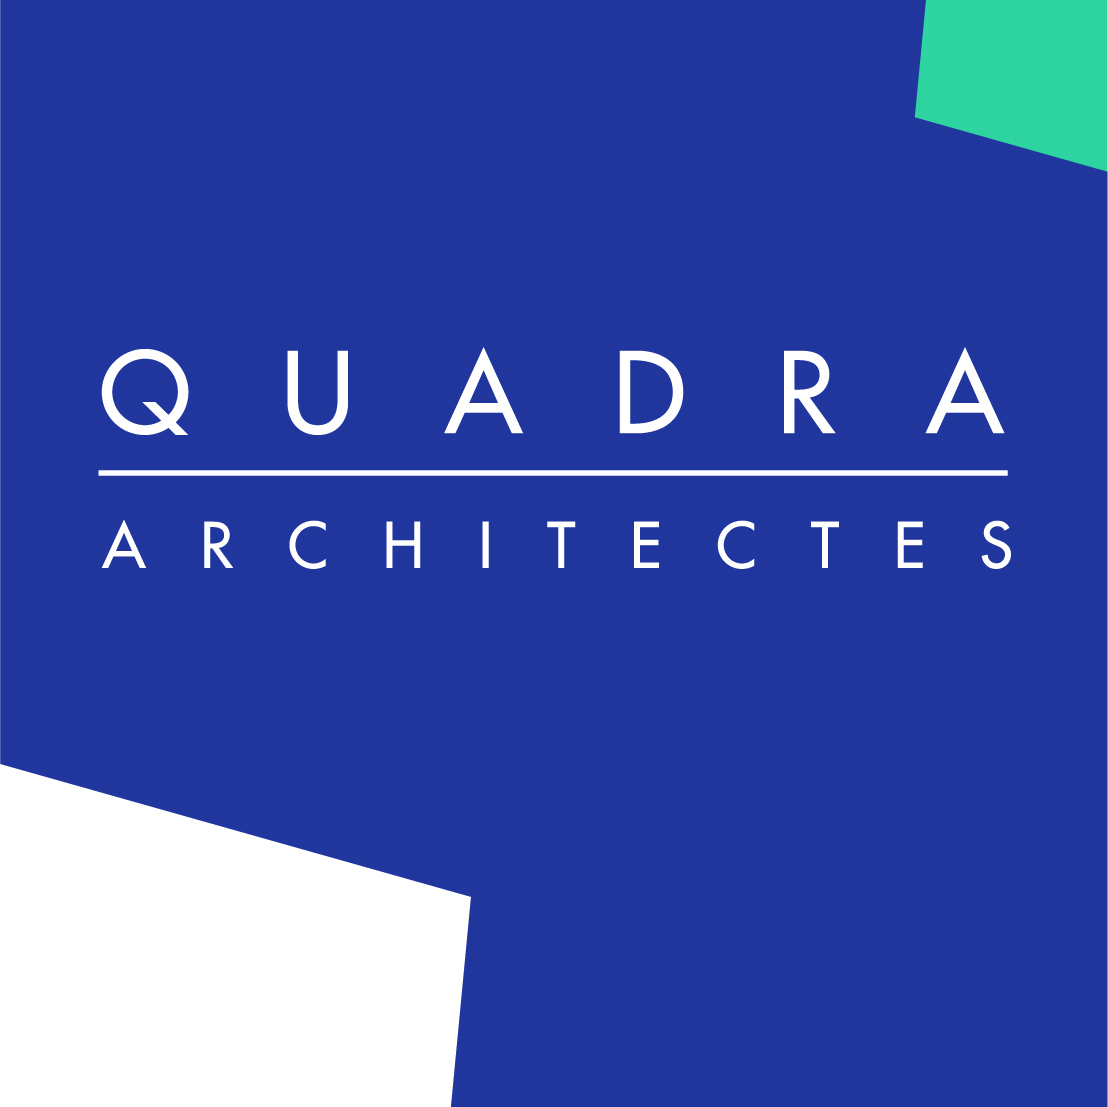 QUADRA ARCHITECTES